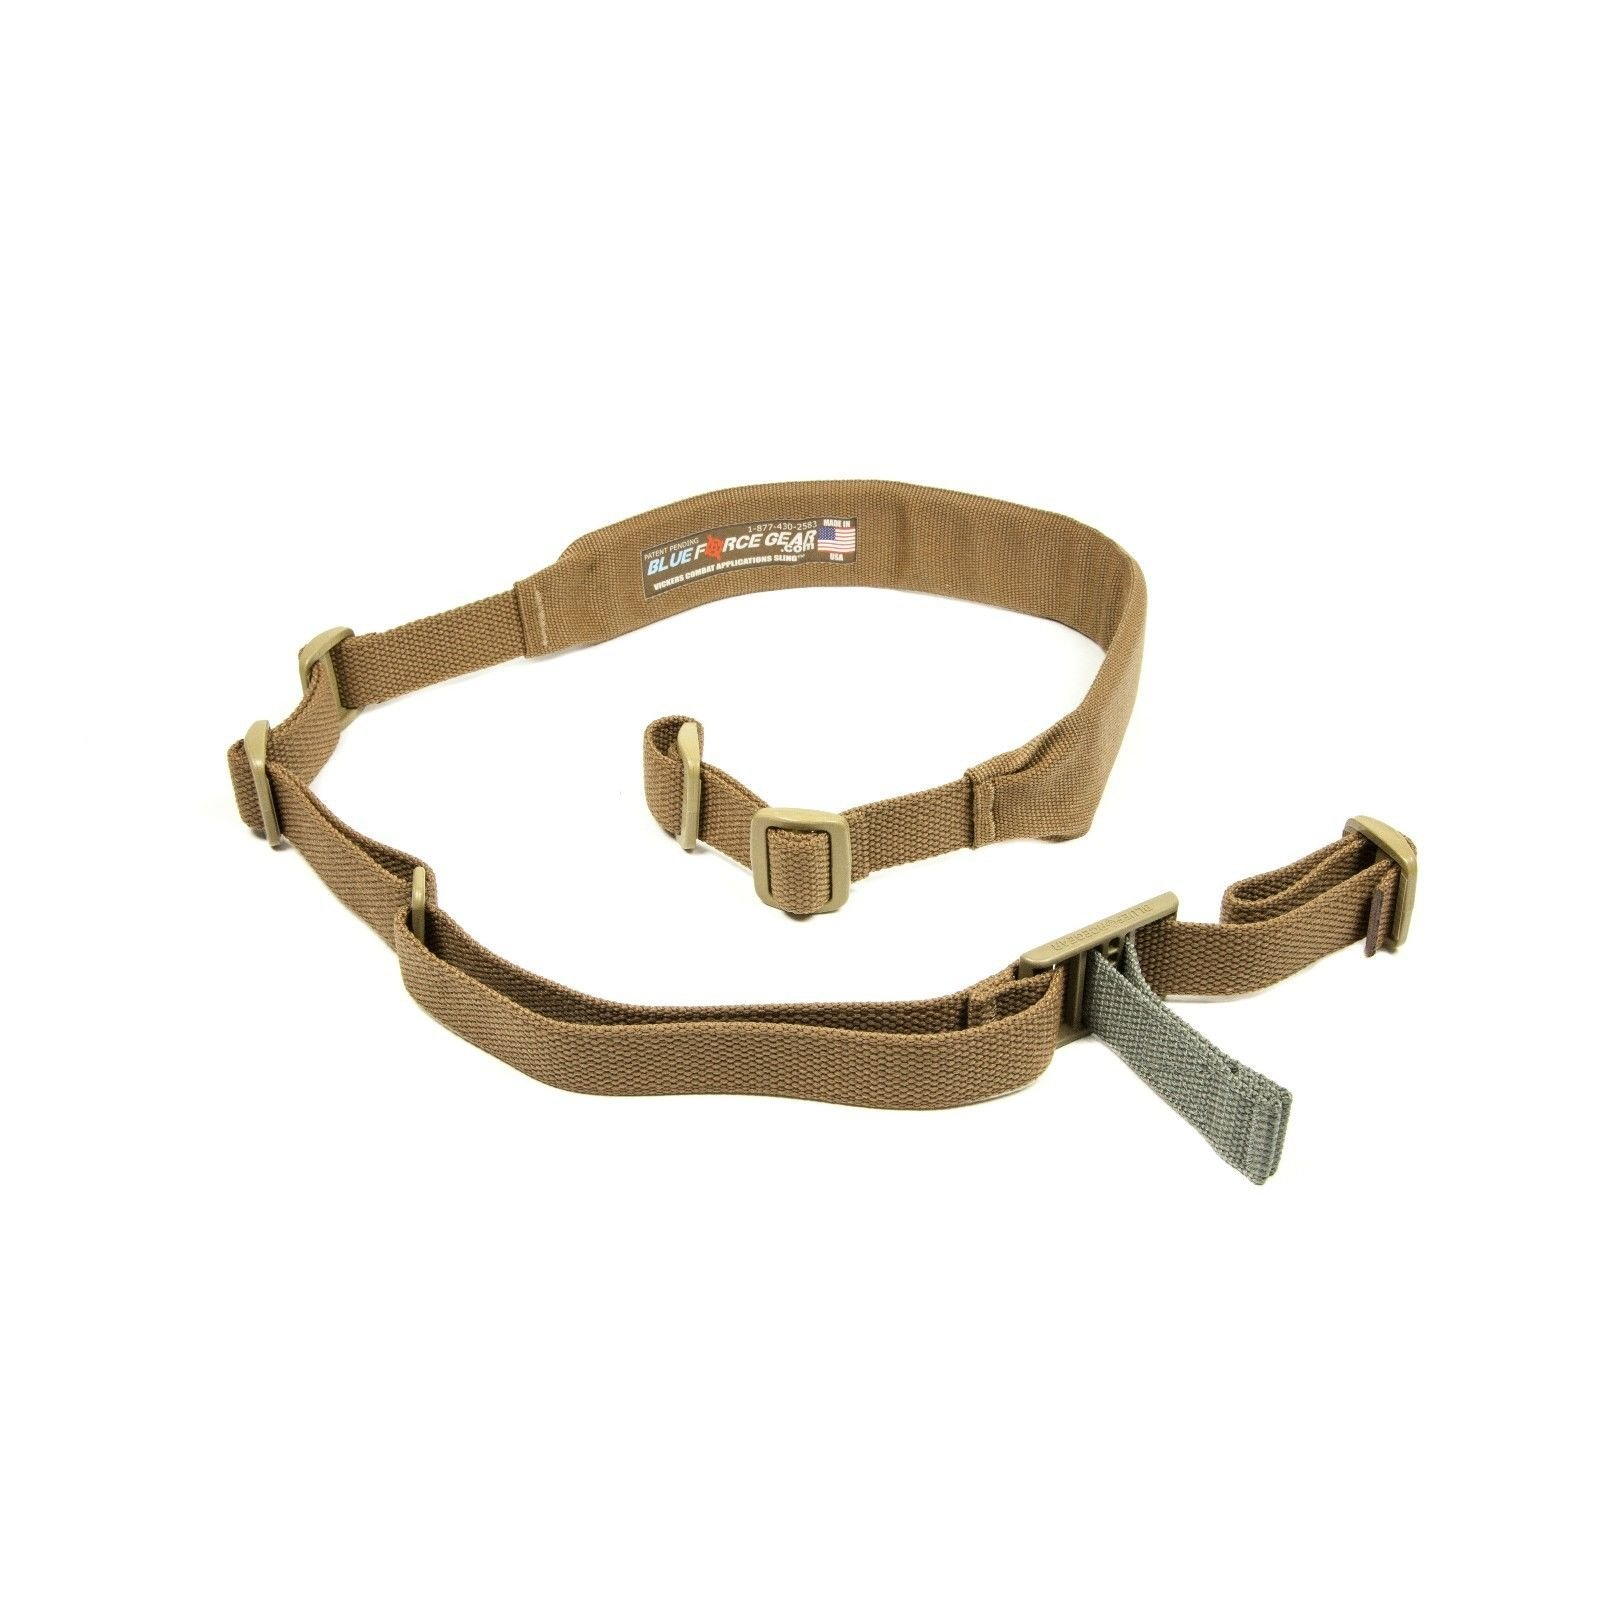 Blue Force Gear Vickers 2-Point Padded Combat Sling, Coyote Brown by Blue Force Gear